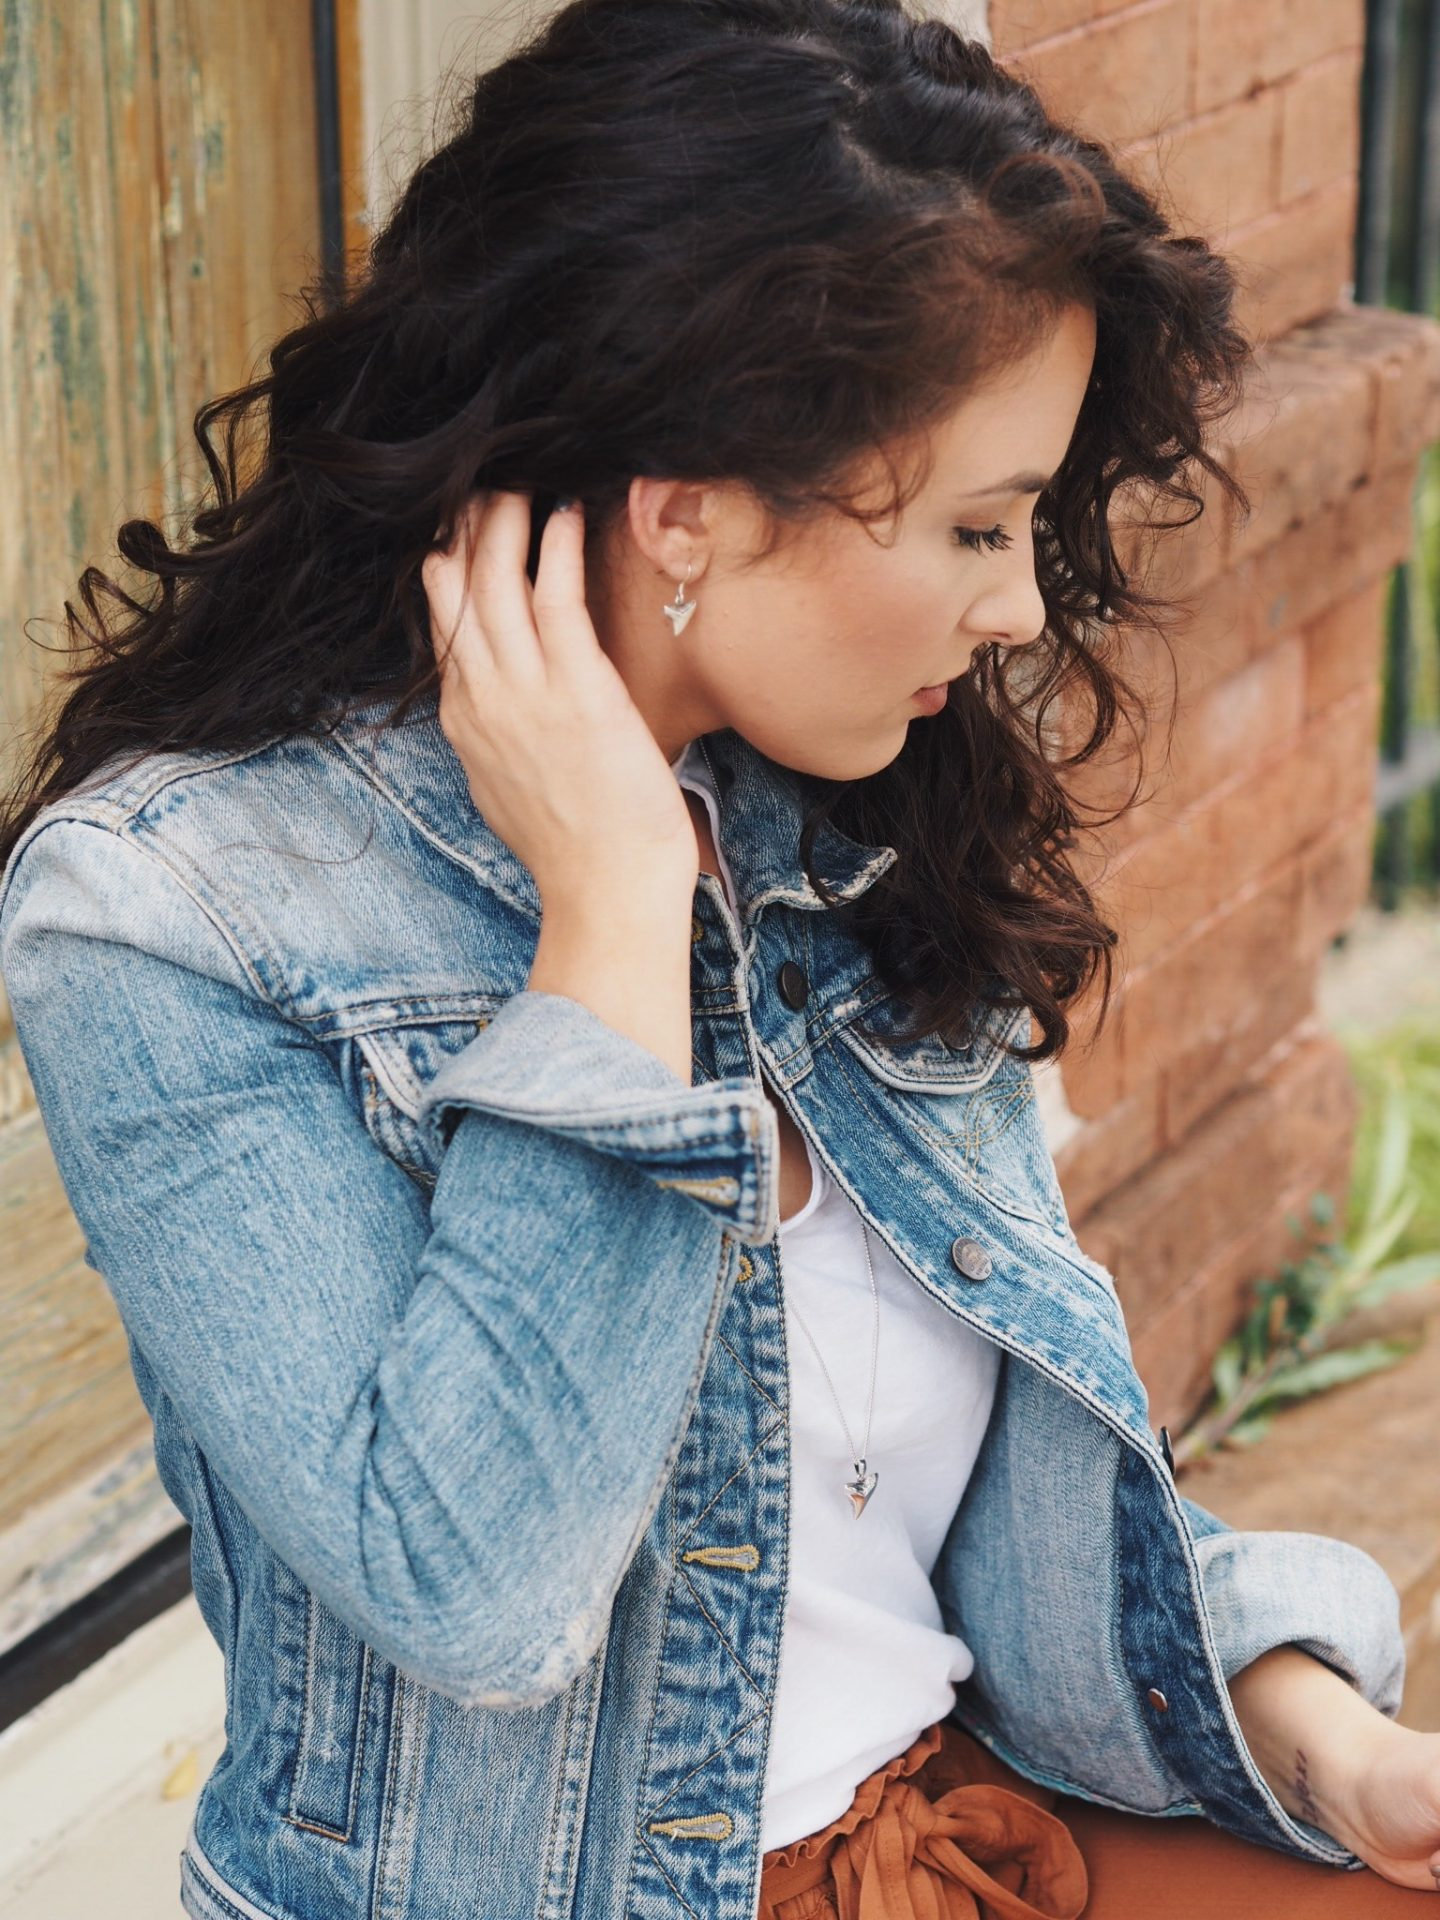 denim jacket. fall style. mom. mom style. fall fashion. fall trends. white tee. t-shirt. curly hair. curly hair looks